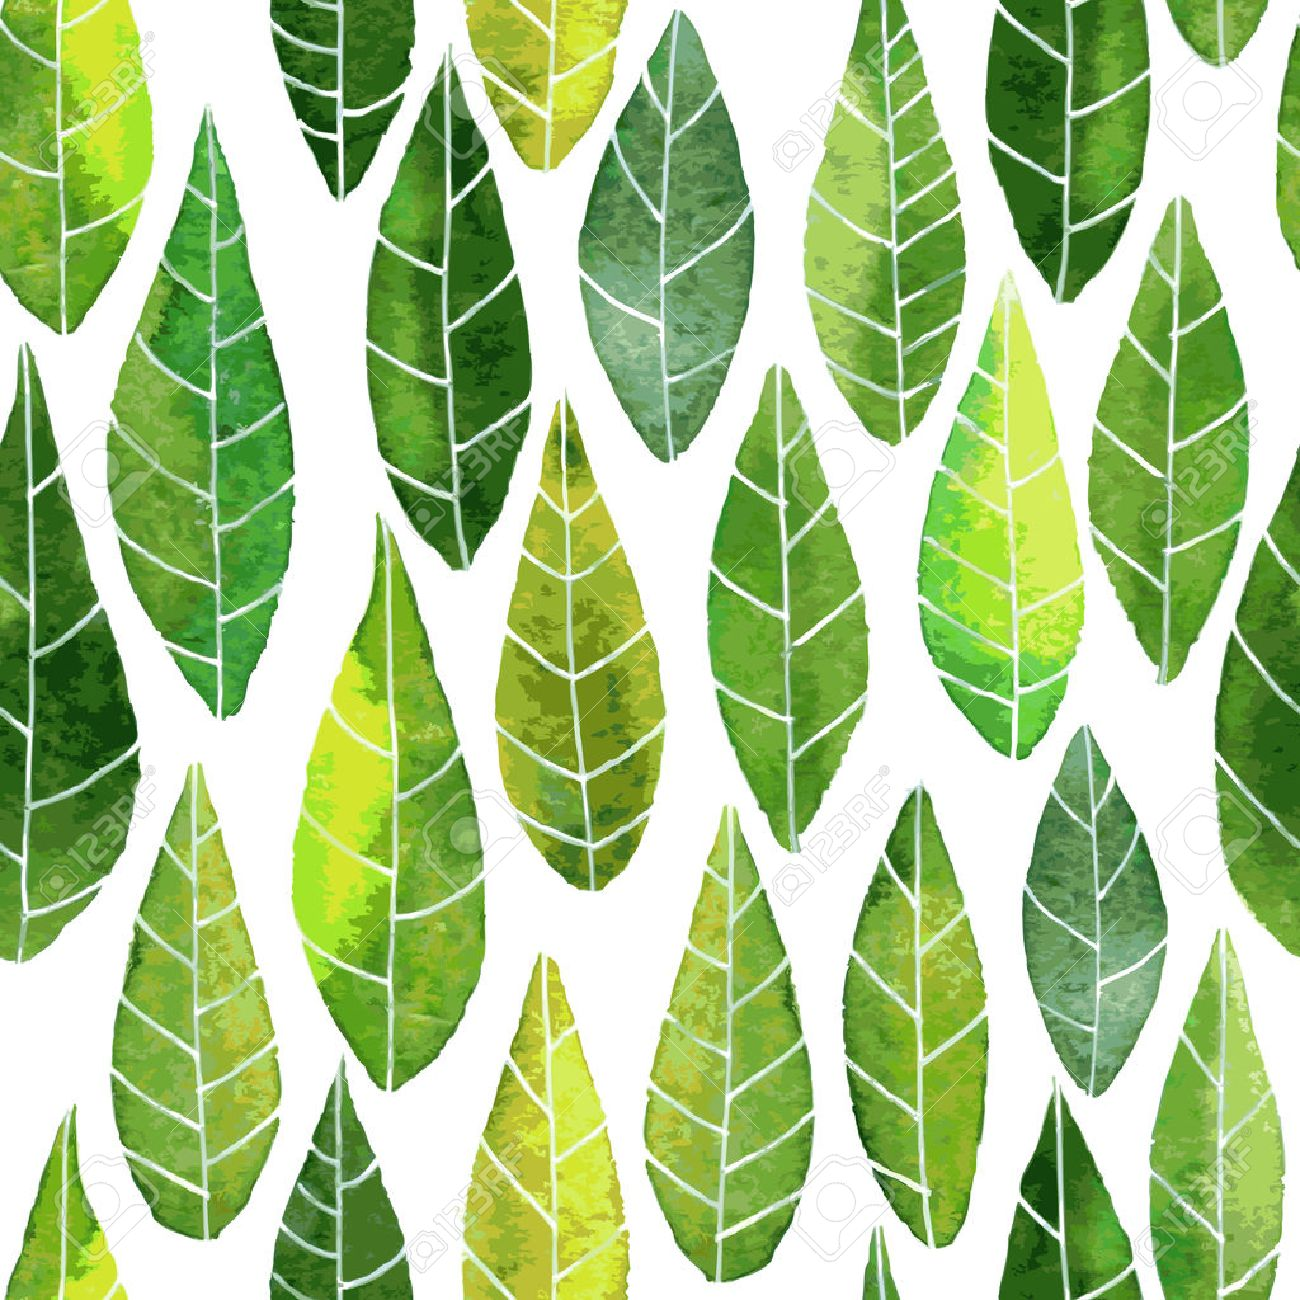 Vector Seamless Pattern With Abstract Green Leaves With Streaks Royalty Free Cliparts Vectors And Stock Illustration Image 38960264